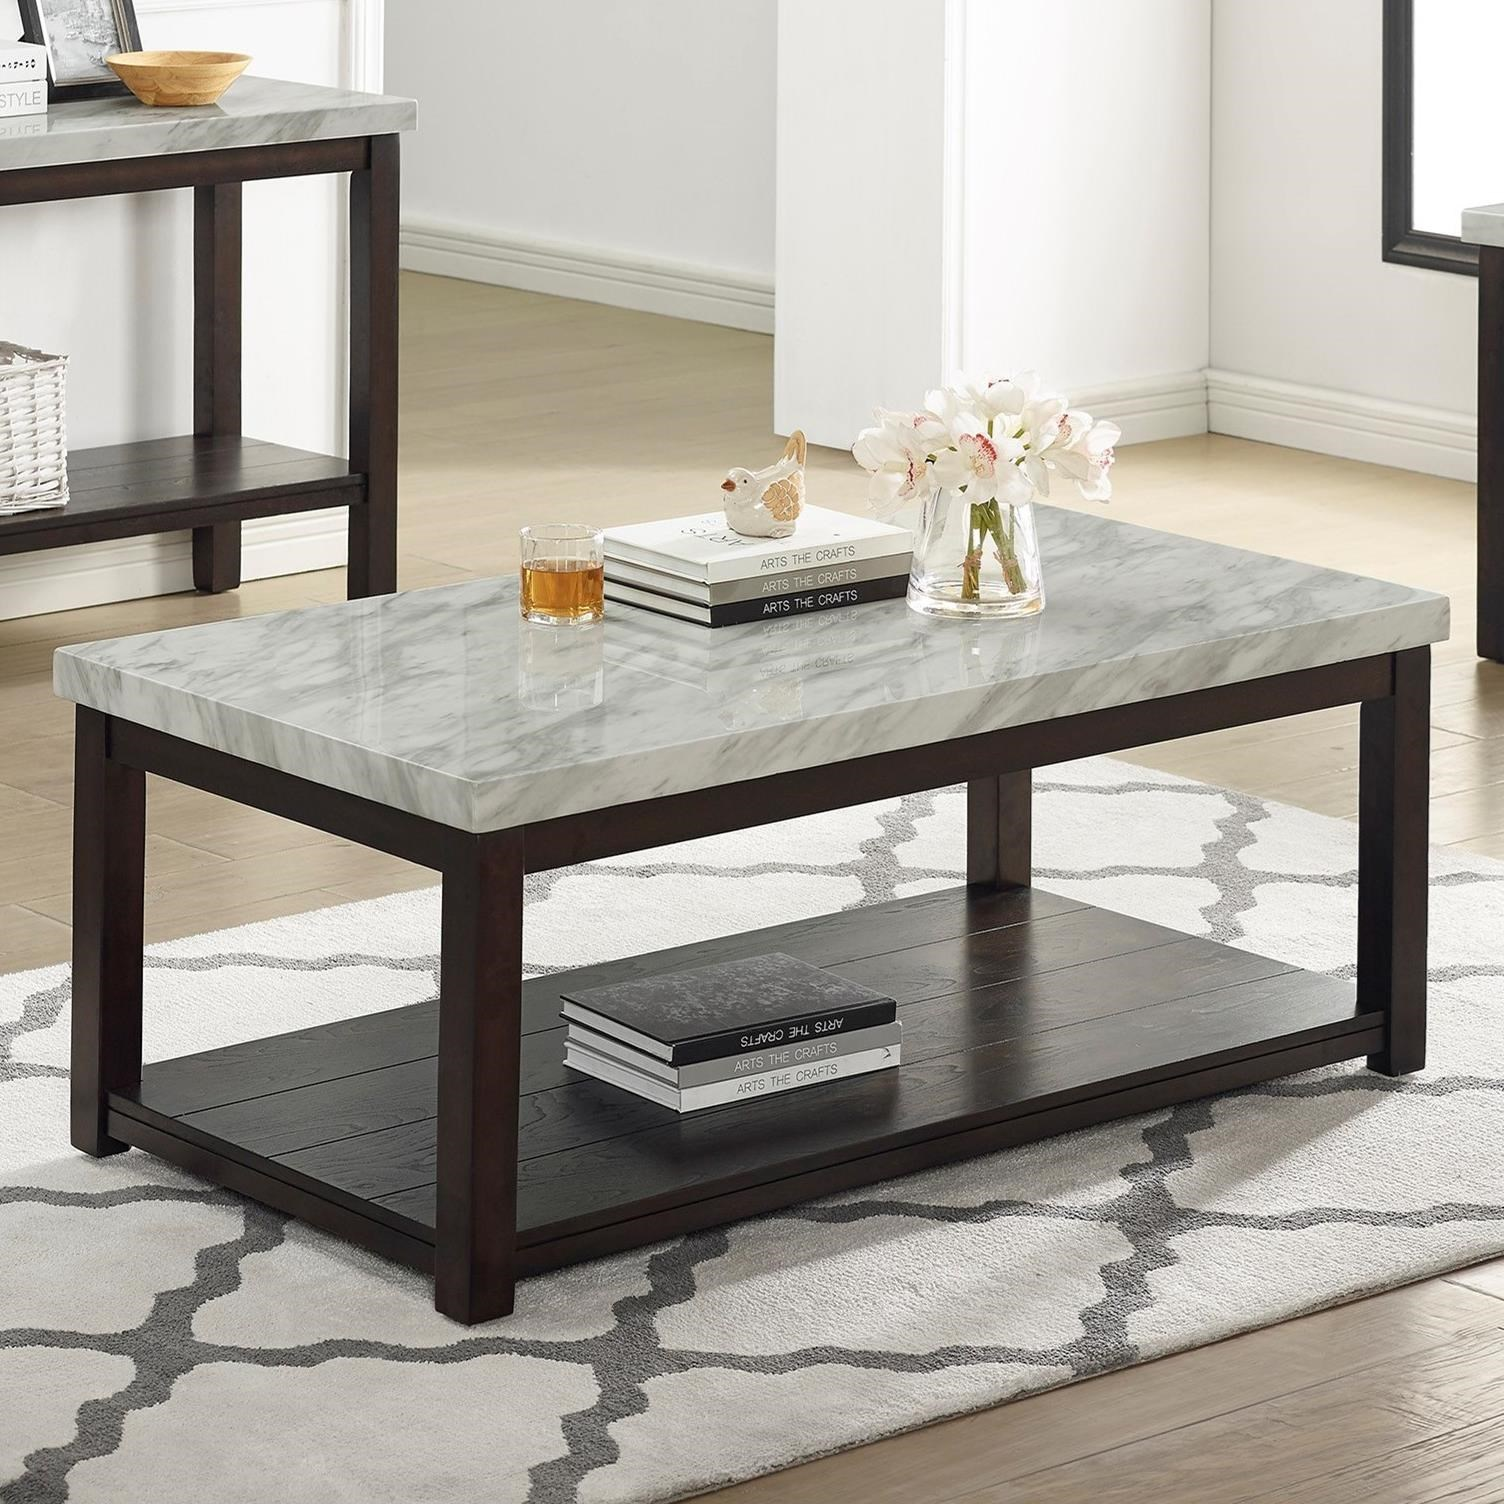 Deacon Coffee Table w/ Casters by Crown Mark at Catalog Outlet